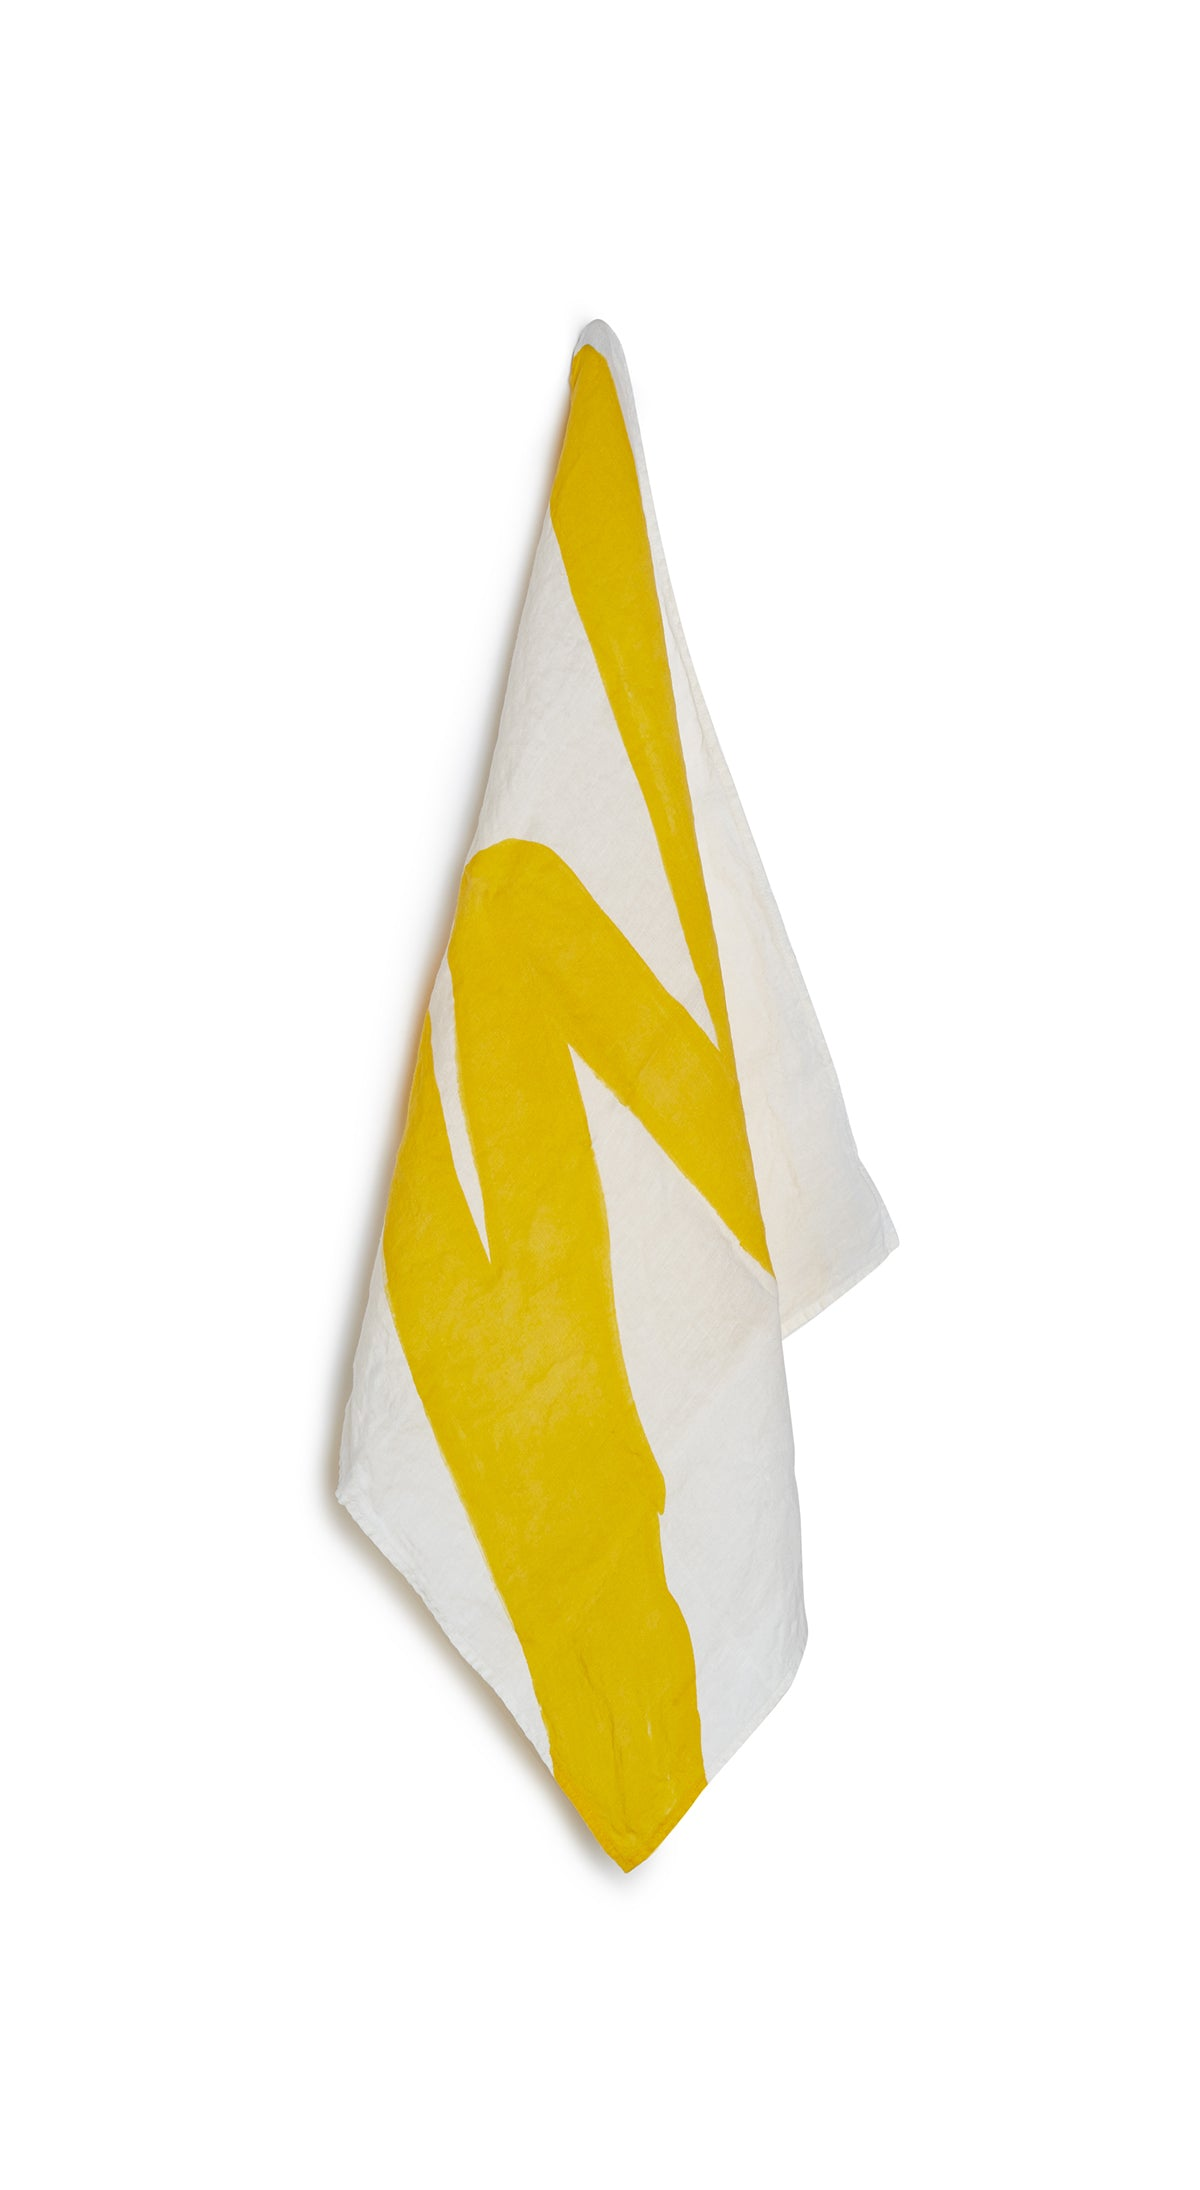 Alphabet Napkin 'W' in Lemon Yellow